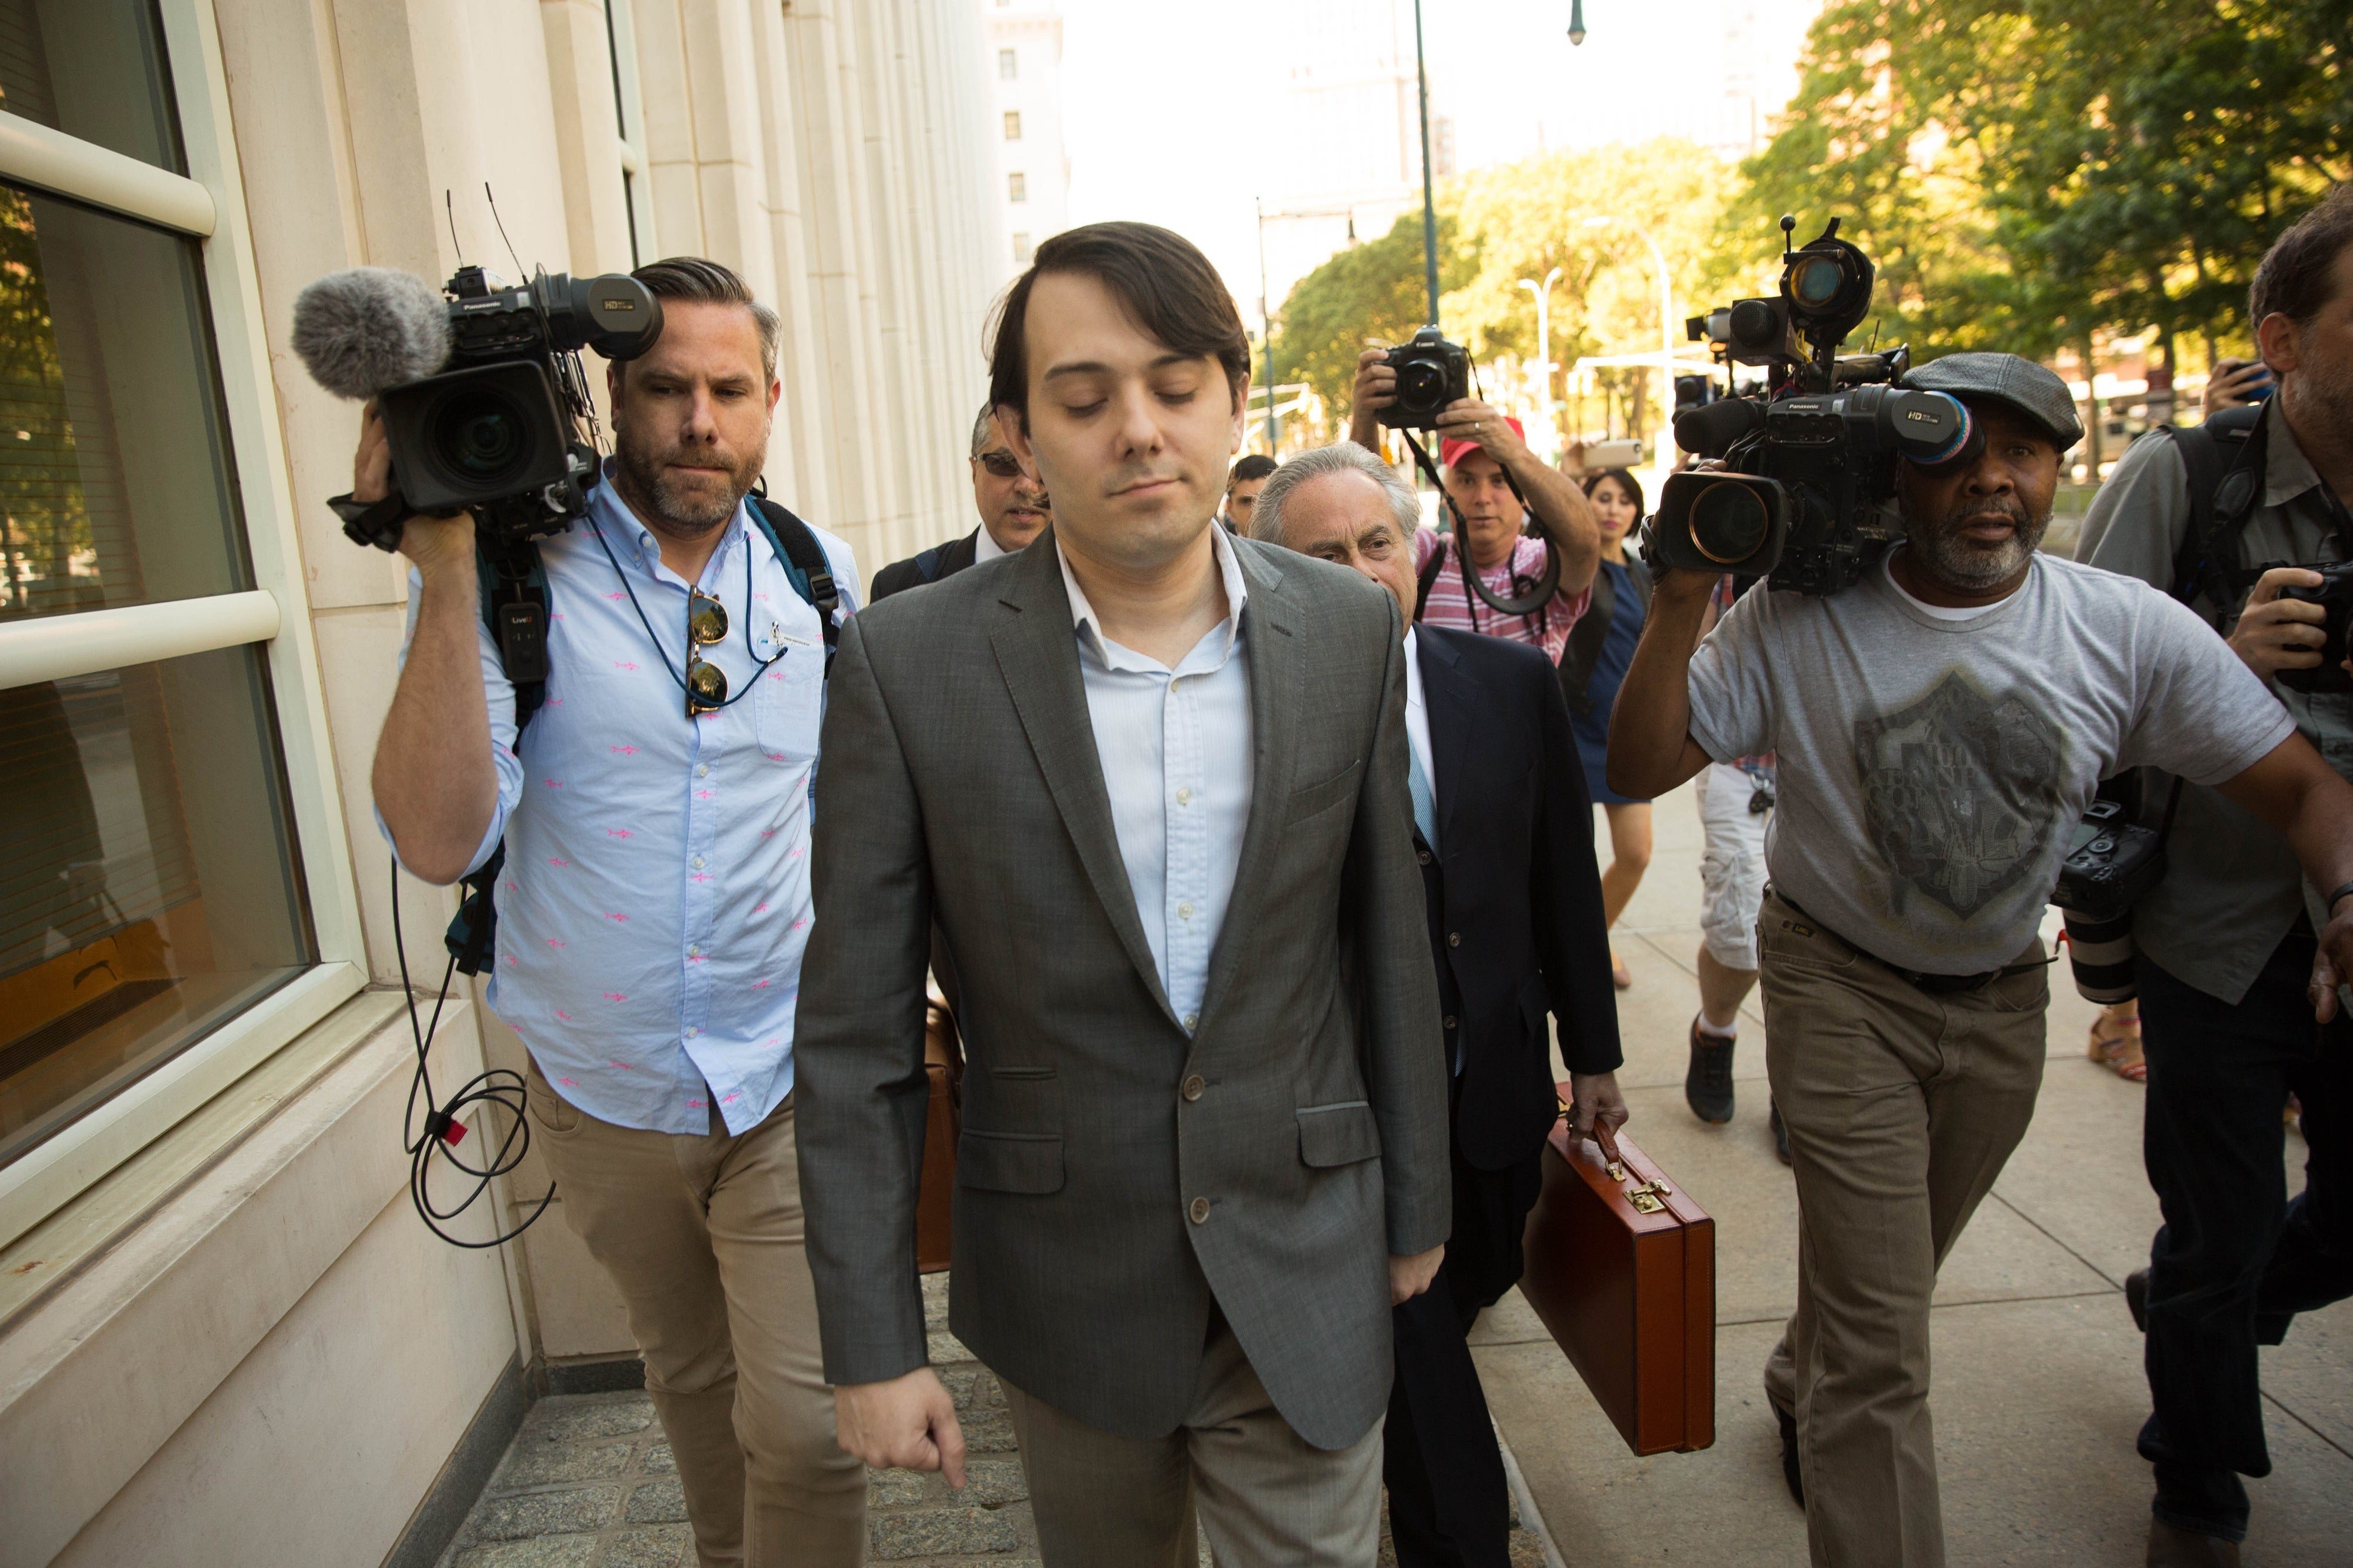 Martin Shkreli, Who Raised Drug Prices 5,000 Percent, Heads into Fraud Trial